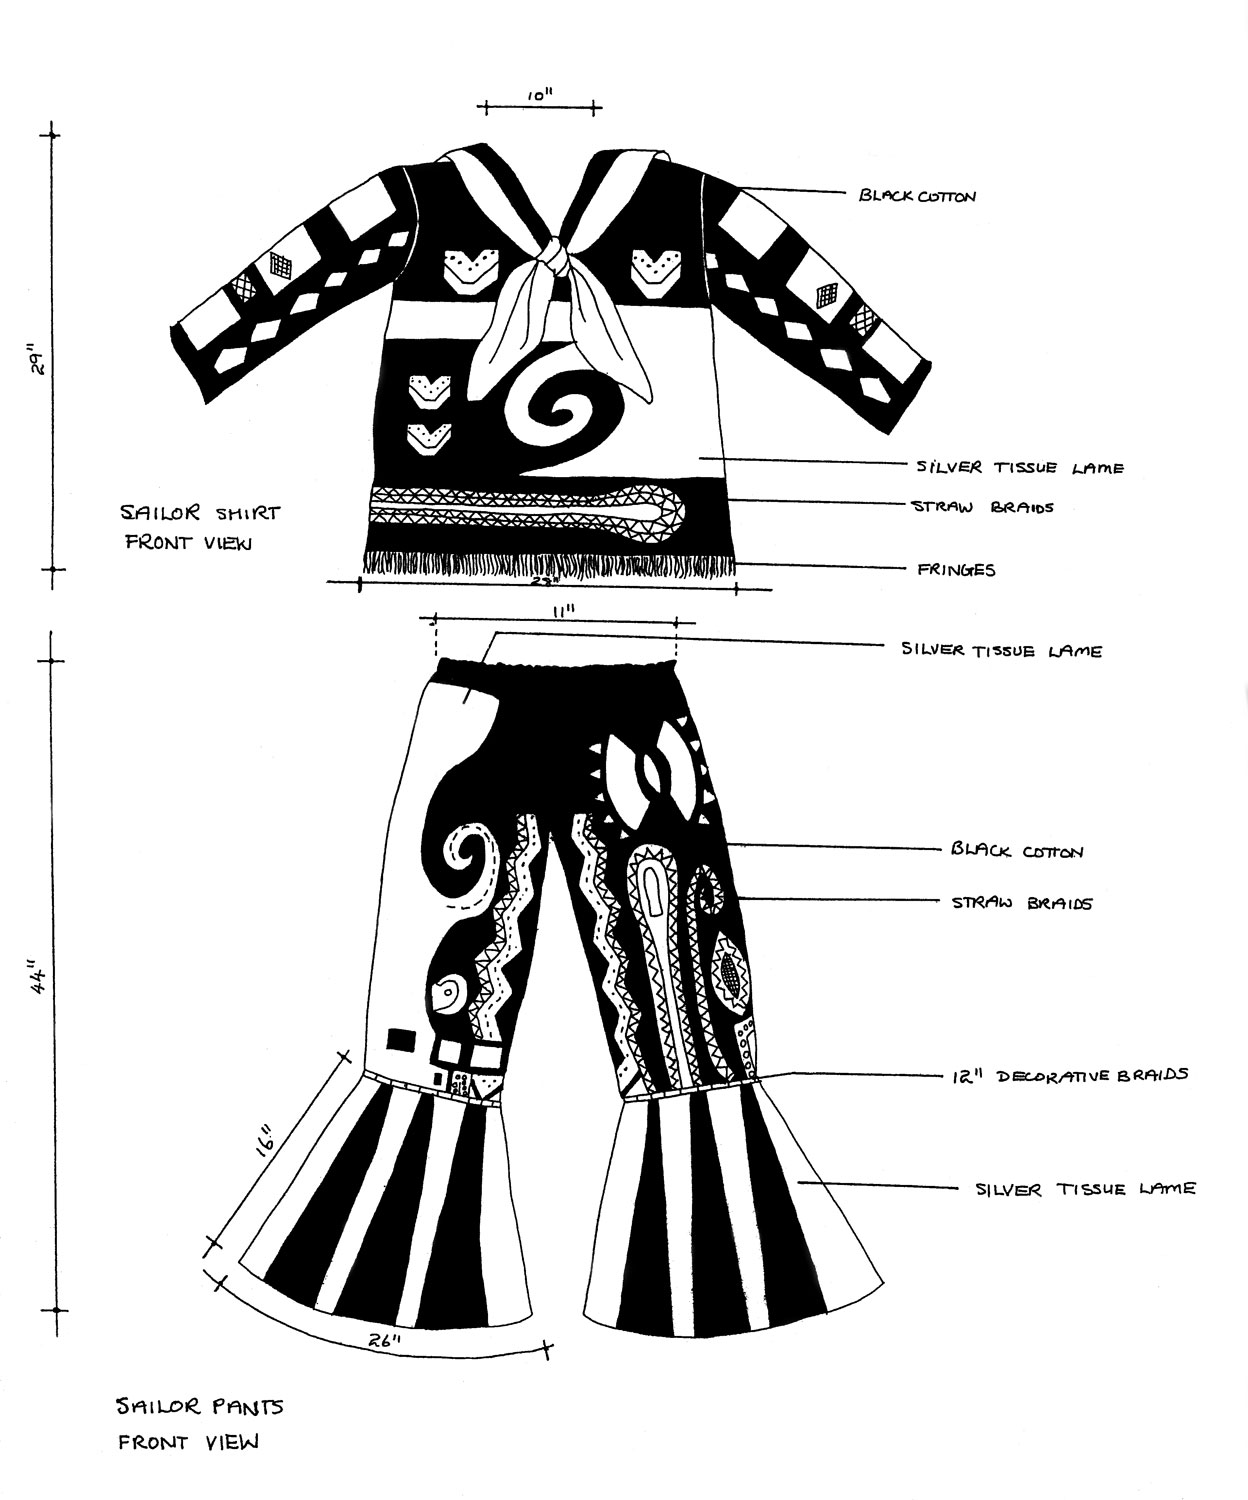 King Sailor costume, designed and decorated by Bill Trotman. Illustration courtesy The Carnival Institute